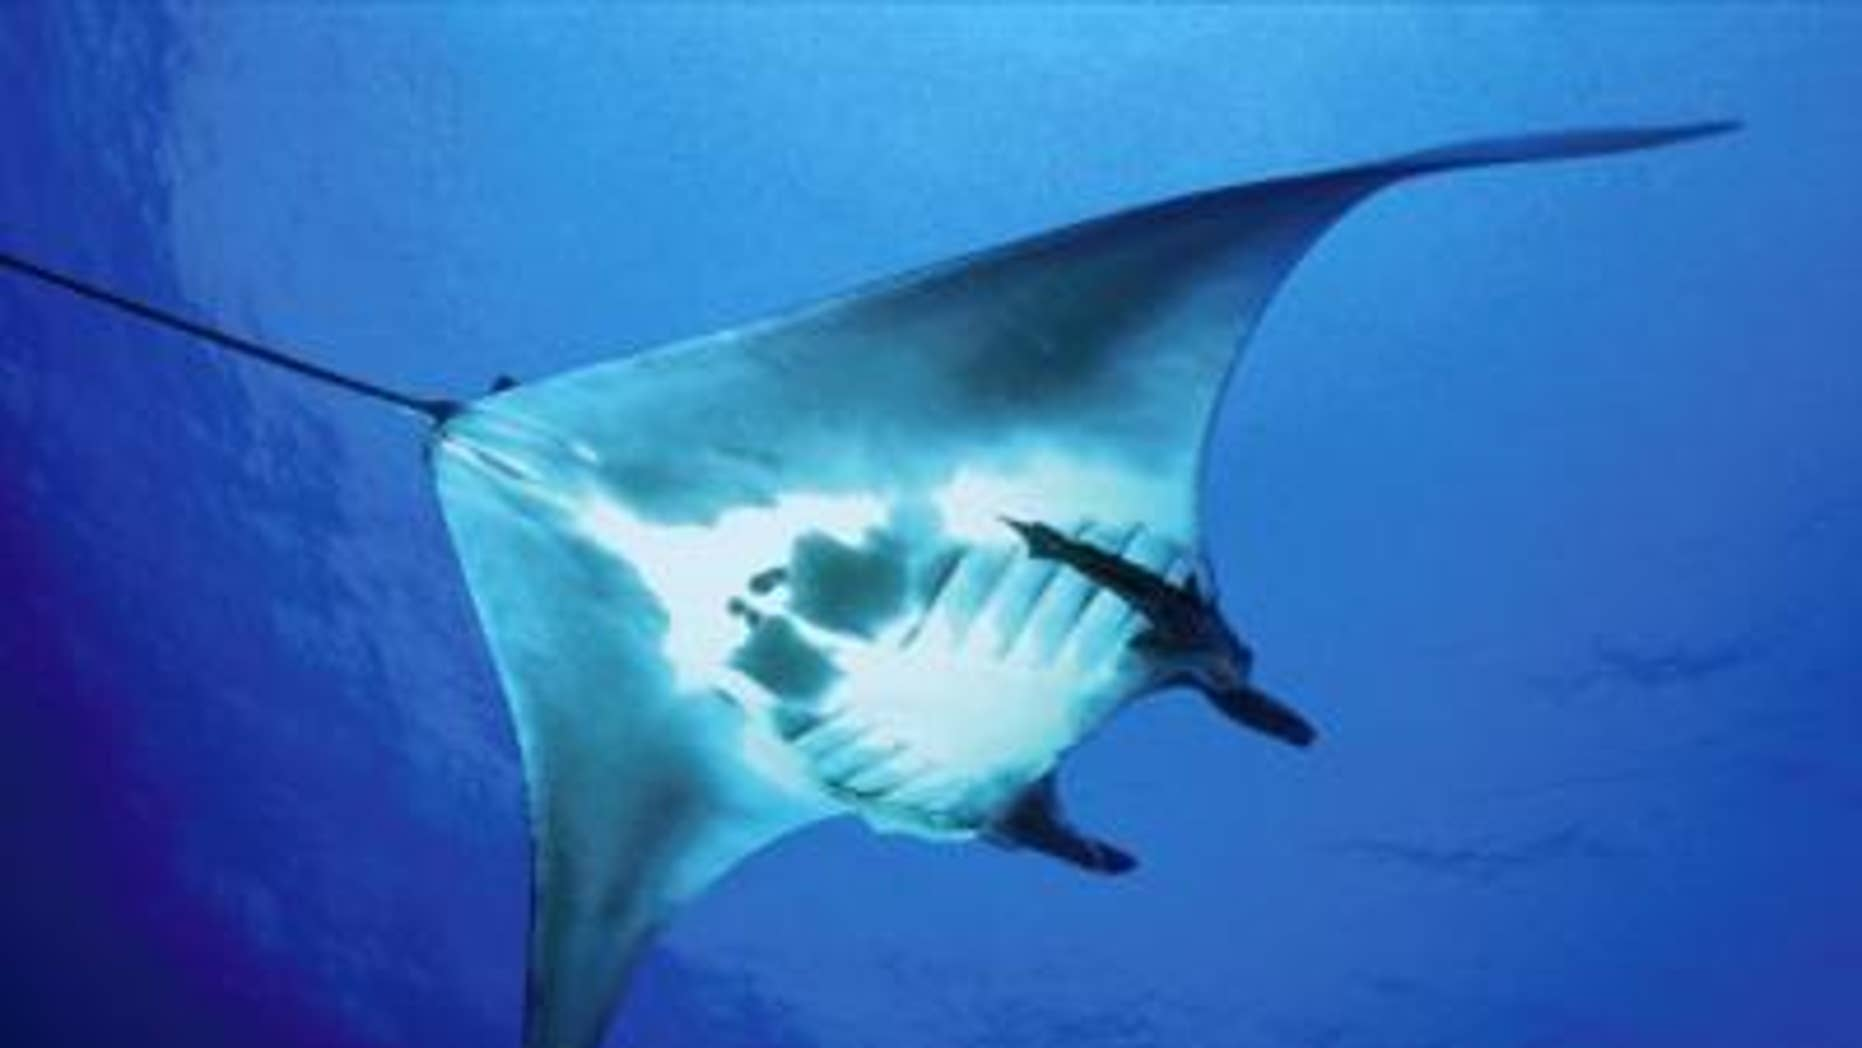 Researchers from the Wildlife Conservation Society, the University of Exeter, and the Government of Mexico have published the first-ever satellite telemetry study on the manta ray, the world's largest ray species.